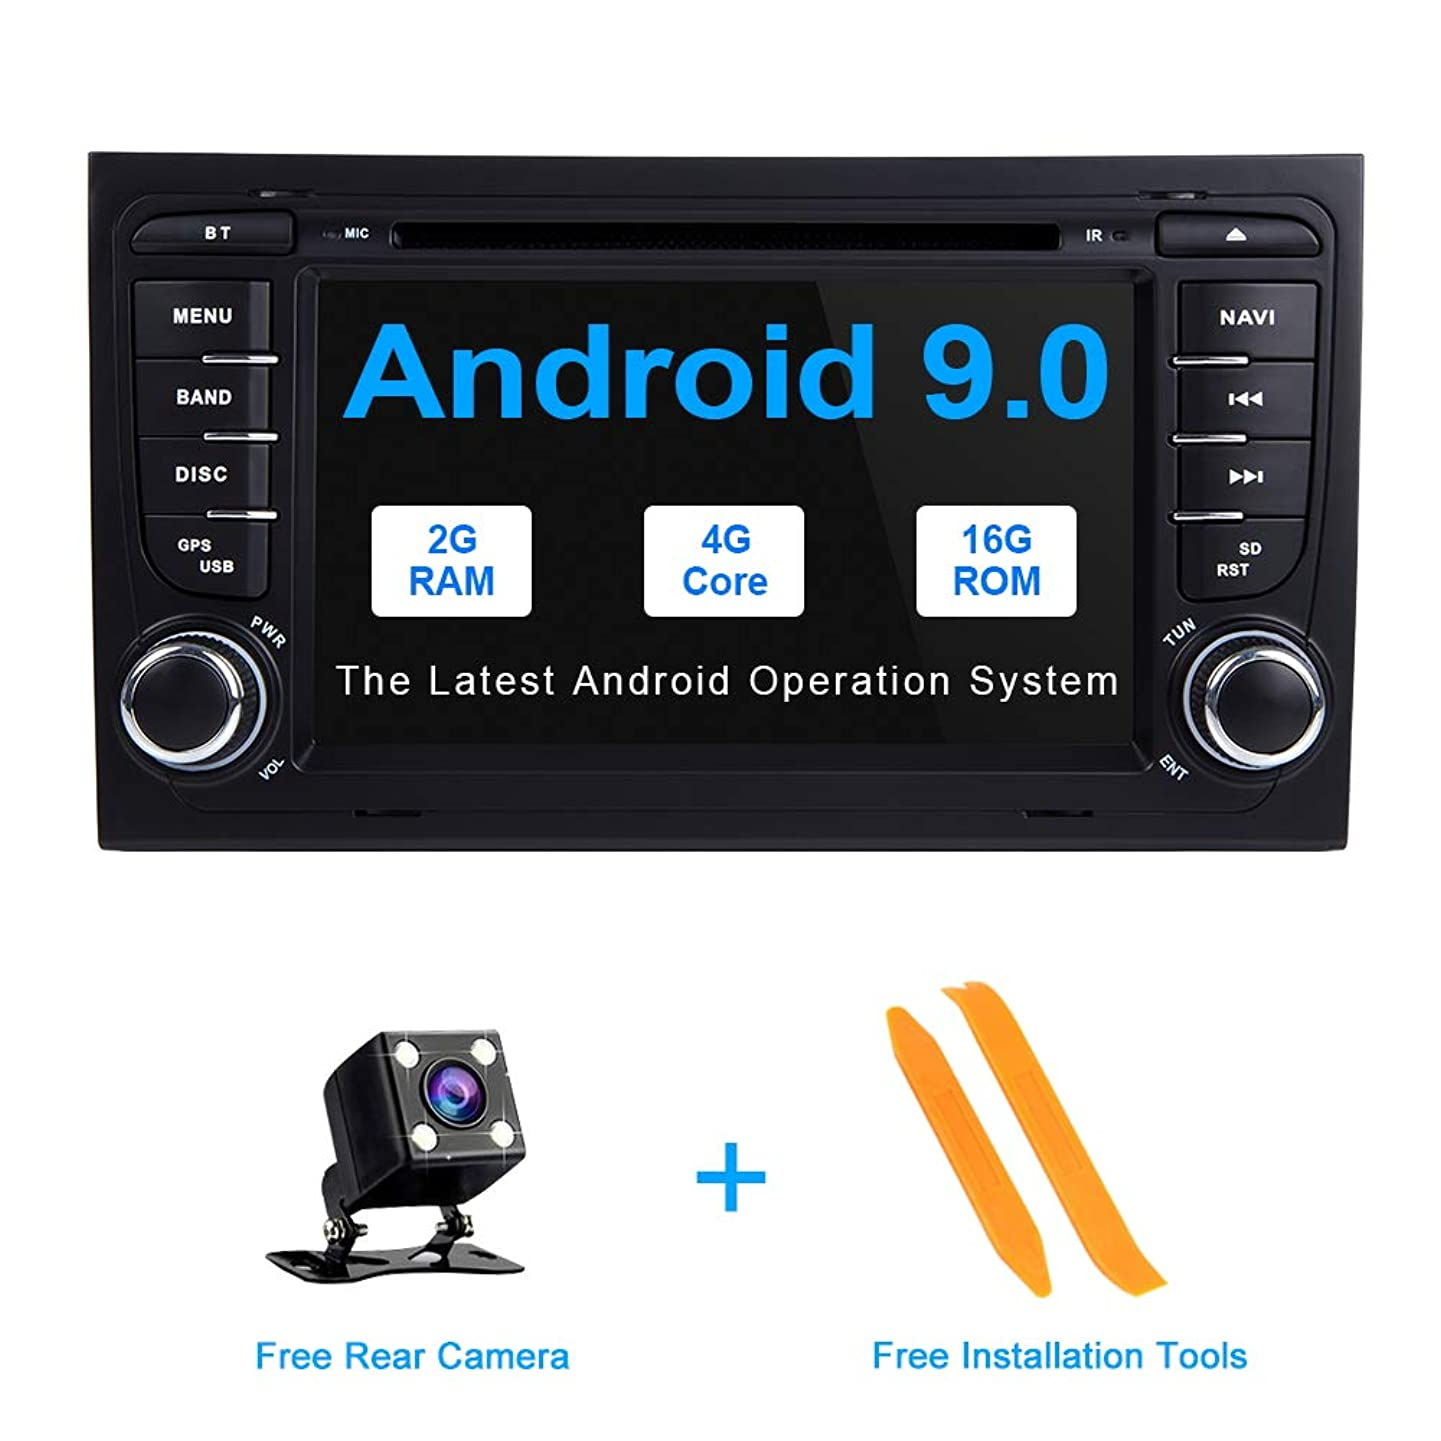 TOOPAI Android 9.0 Car Radio Car Stereo GPS Navigation 7 Inch Touch Display Car Media Player Double Din Head Unit for Audi/A4/S4/RS4/Seat Exeo Support Screen Mirror WiFi OBD2 Steering Wheel Control